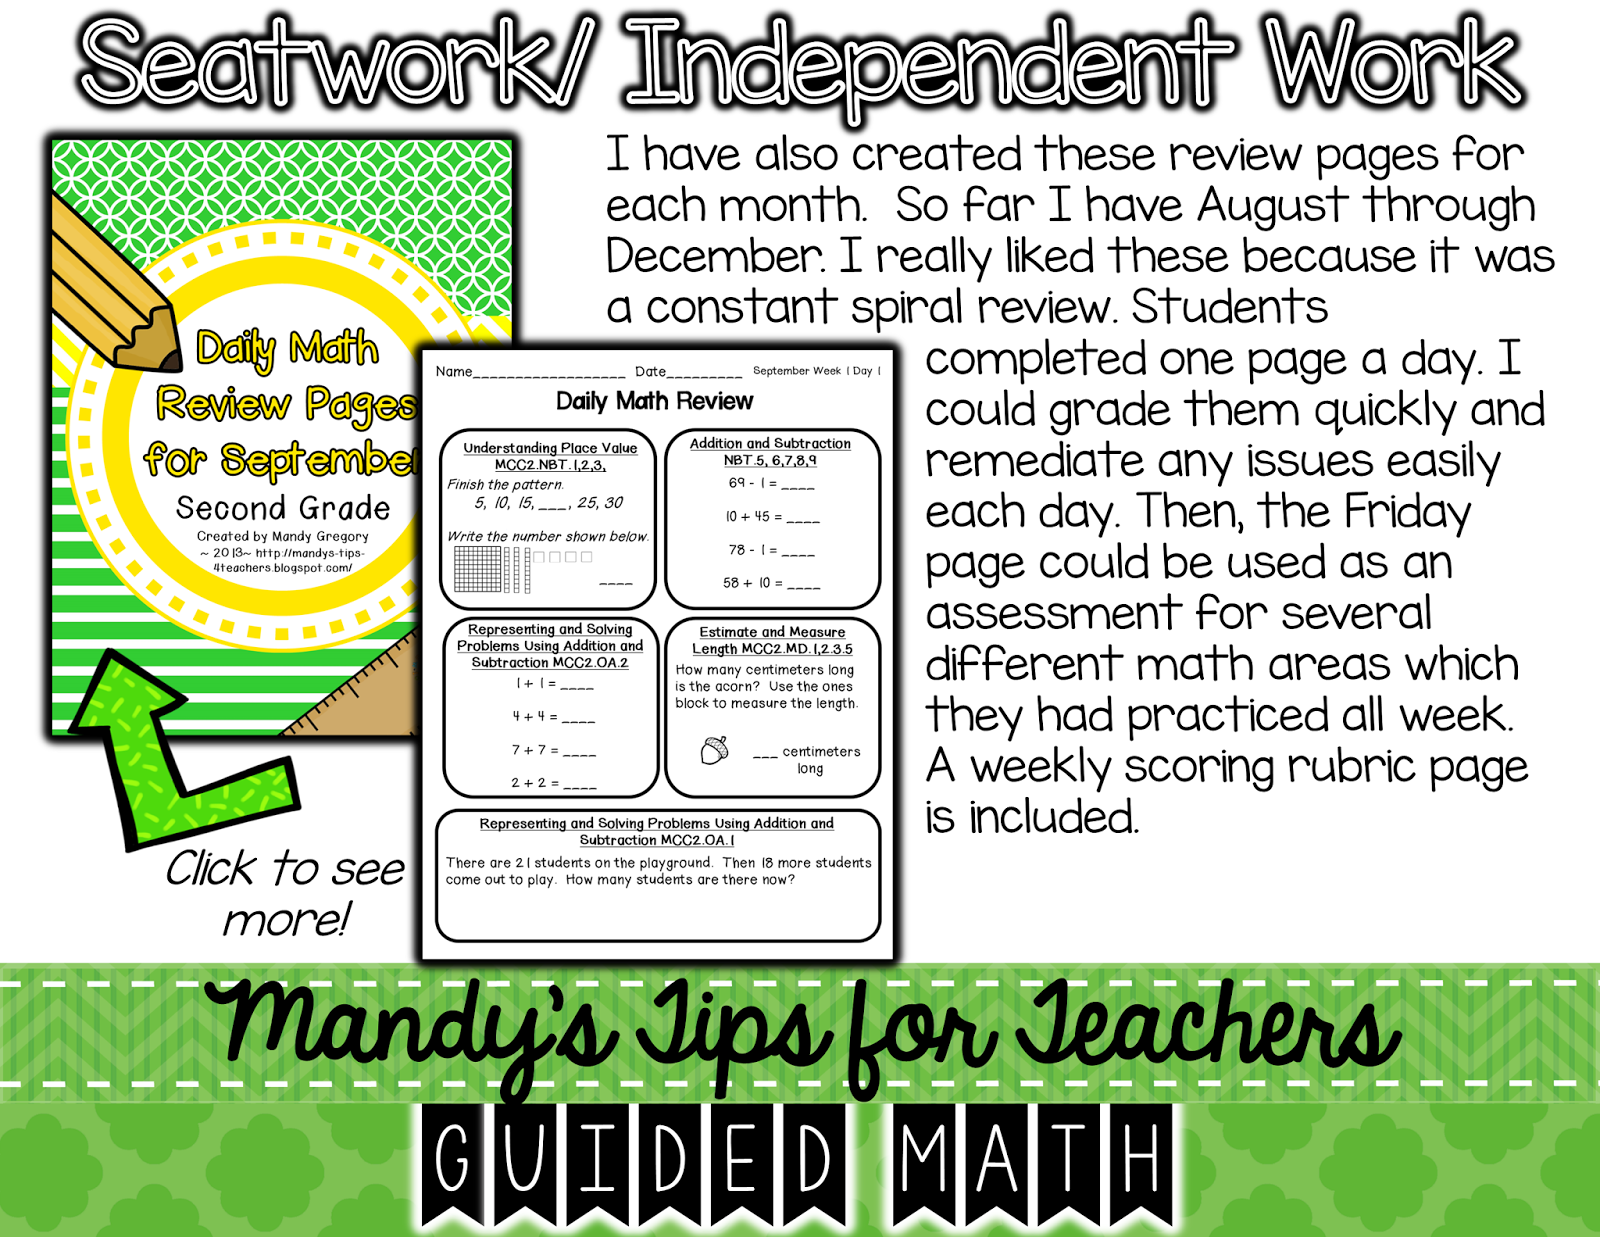 http://www.teacherspayteachers.com/Product/Daily-Math-Review-Pages-for-September-834426